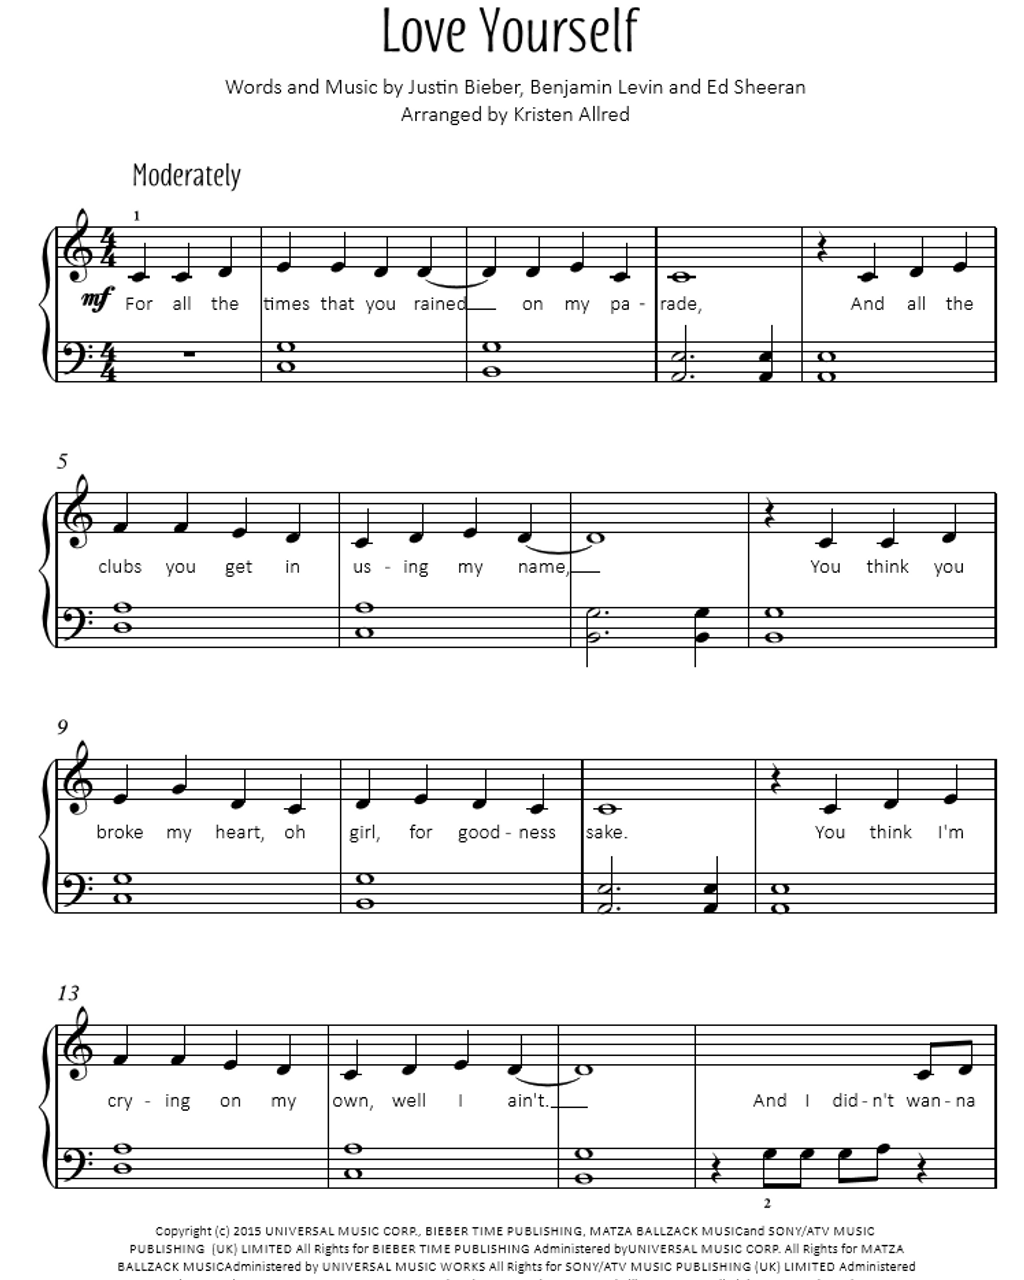 Piano piano sheet music for popular songs : Love Yourself by Justin Beiber - Easy Piano Sheet Music Download